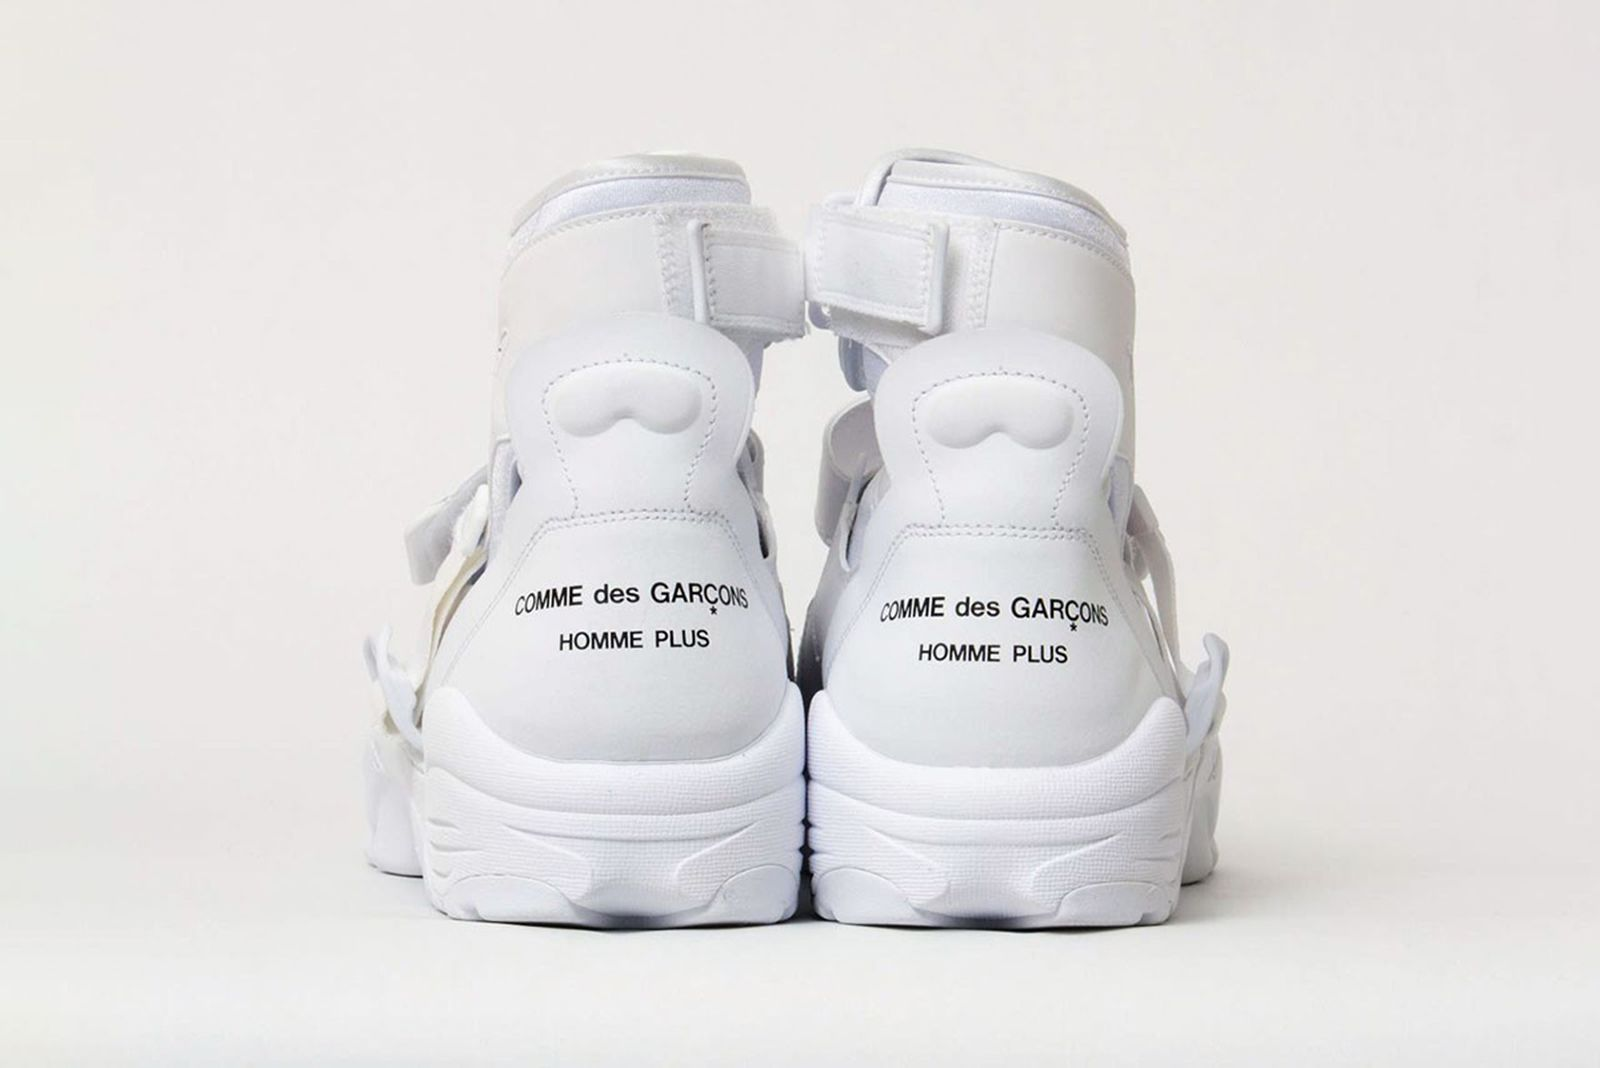 comme-des-garcons-homme-plus-nike-air-carnivore-release-date-price-08